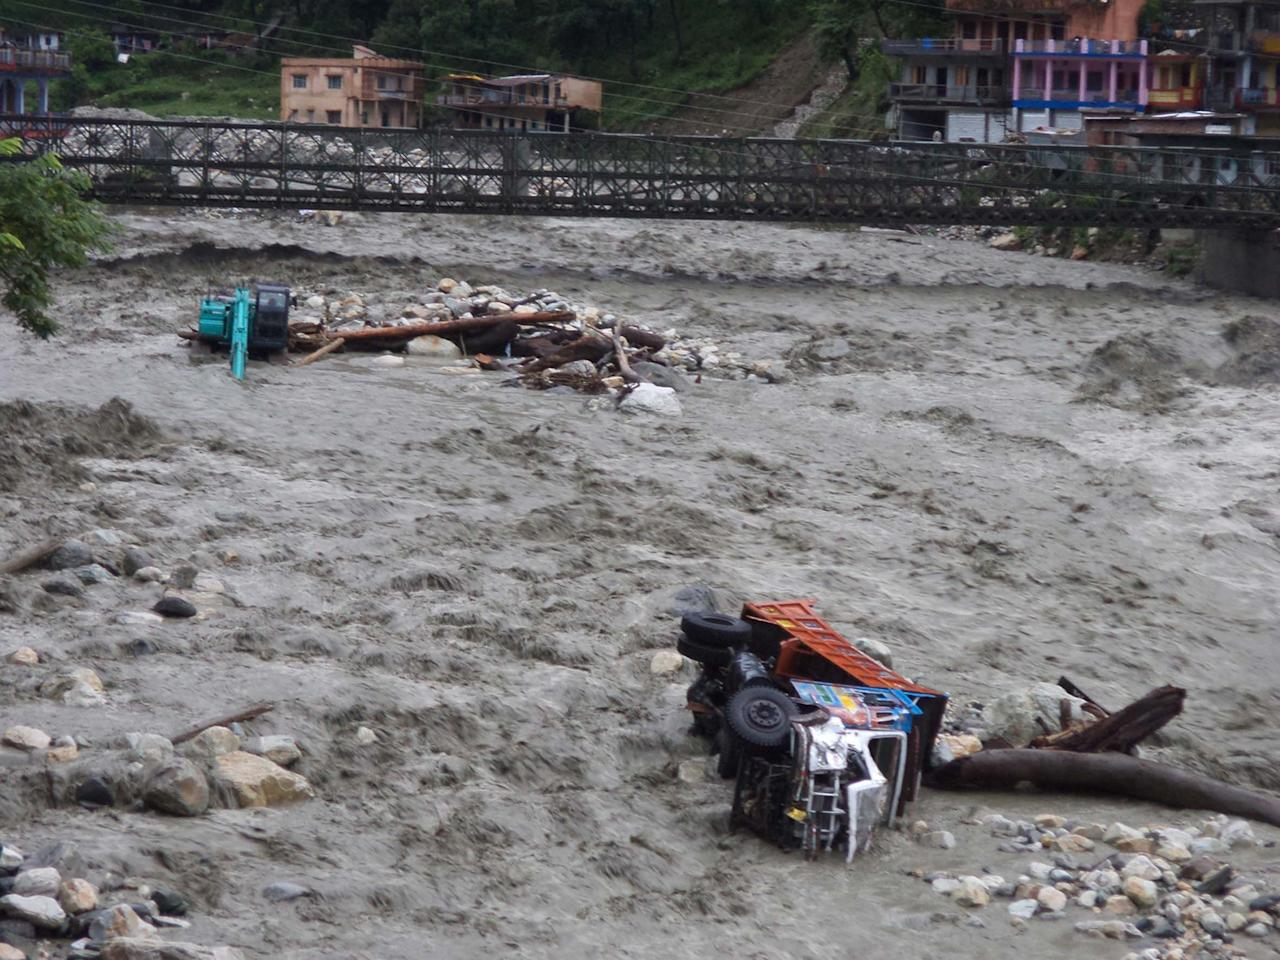 UTTARAKASHI, INDIA - JUNE 16: The destructive Assi Ganga River on June 16, 2013 in Uttarakashi,  India. 11 people died, nearly 50 were missing and thousands stranded in landslides set off by the incessant downpour in Uttarakhand. ( Photo by Santosh Bhatt/Hindustan Times via Getty Images)